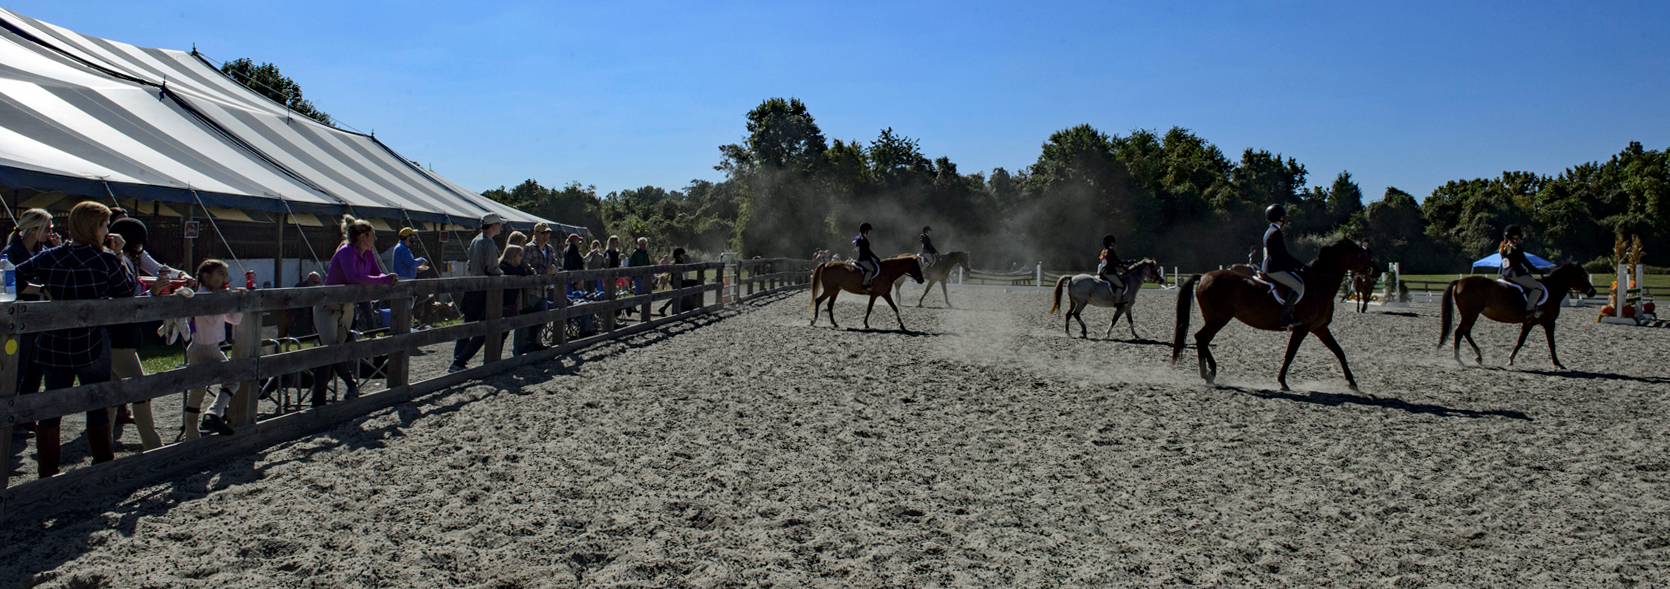 Spectators watch several riders and horses perform in the ring